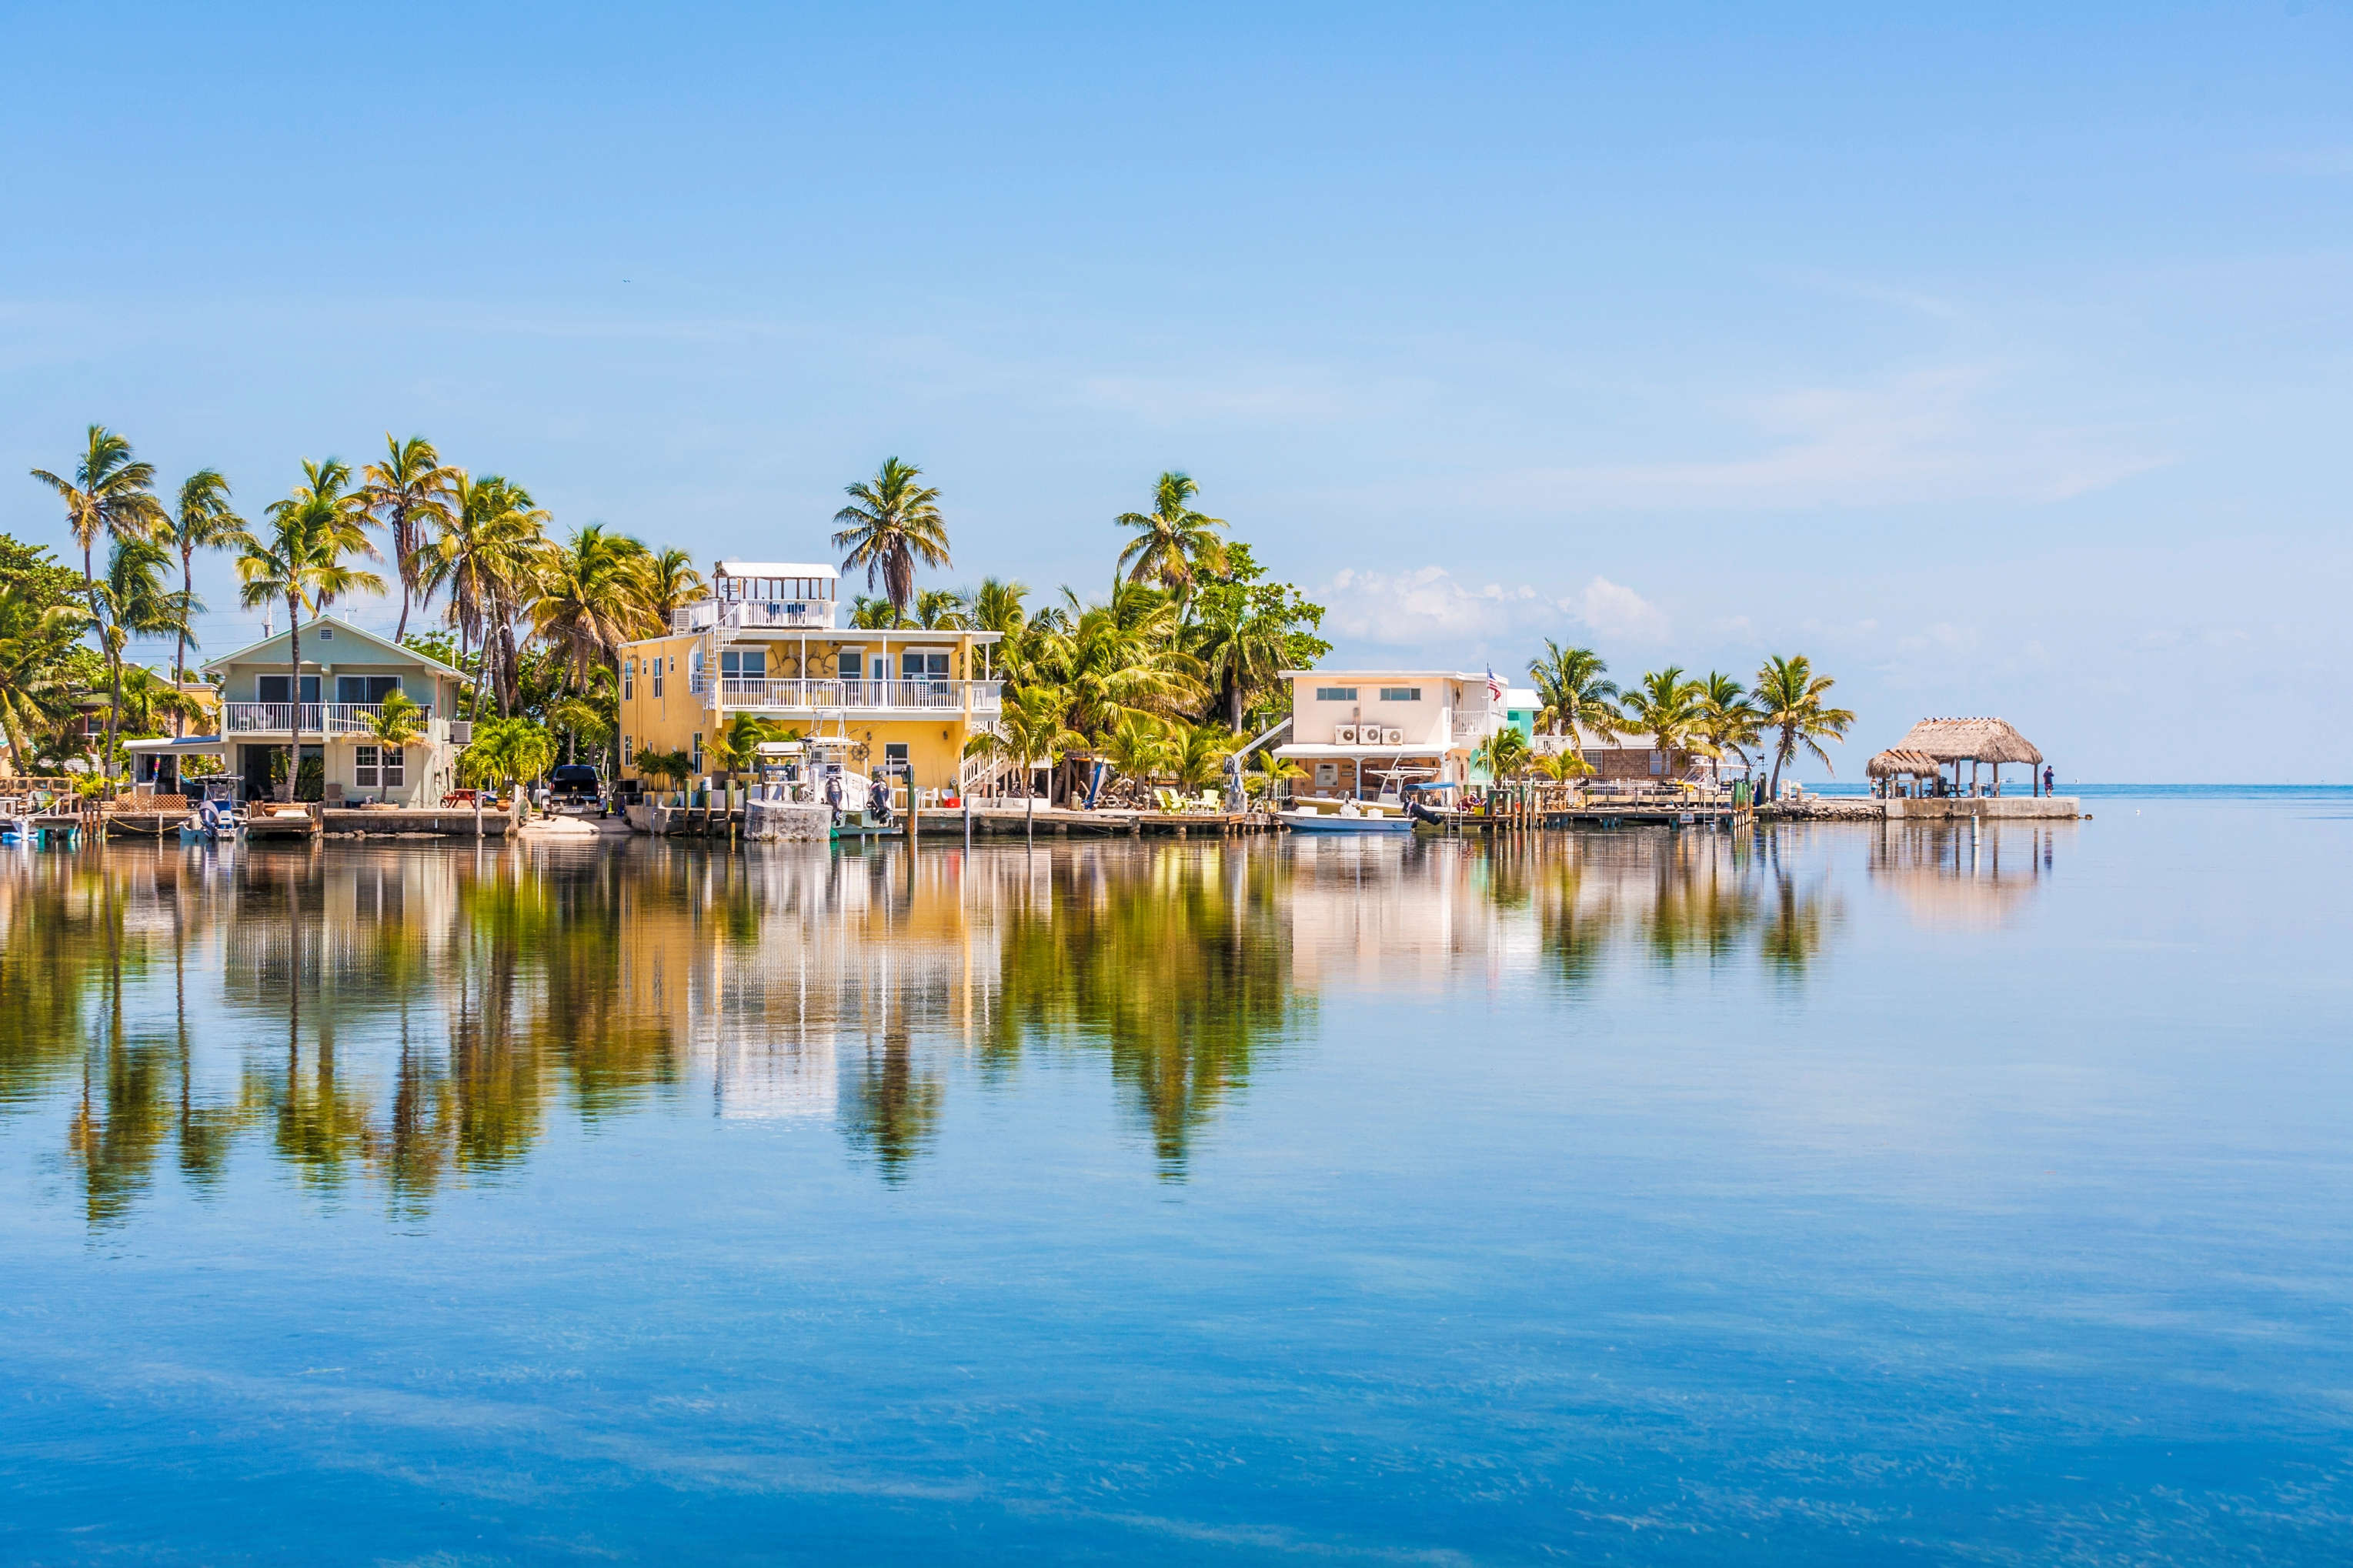 Waterfront Dining in Key West: 10 Great Spots